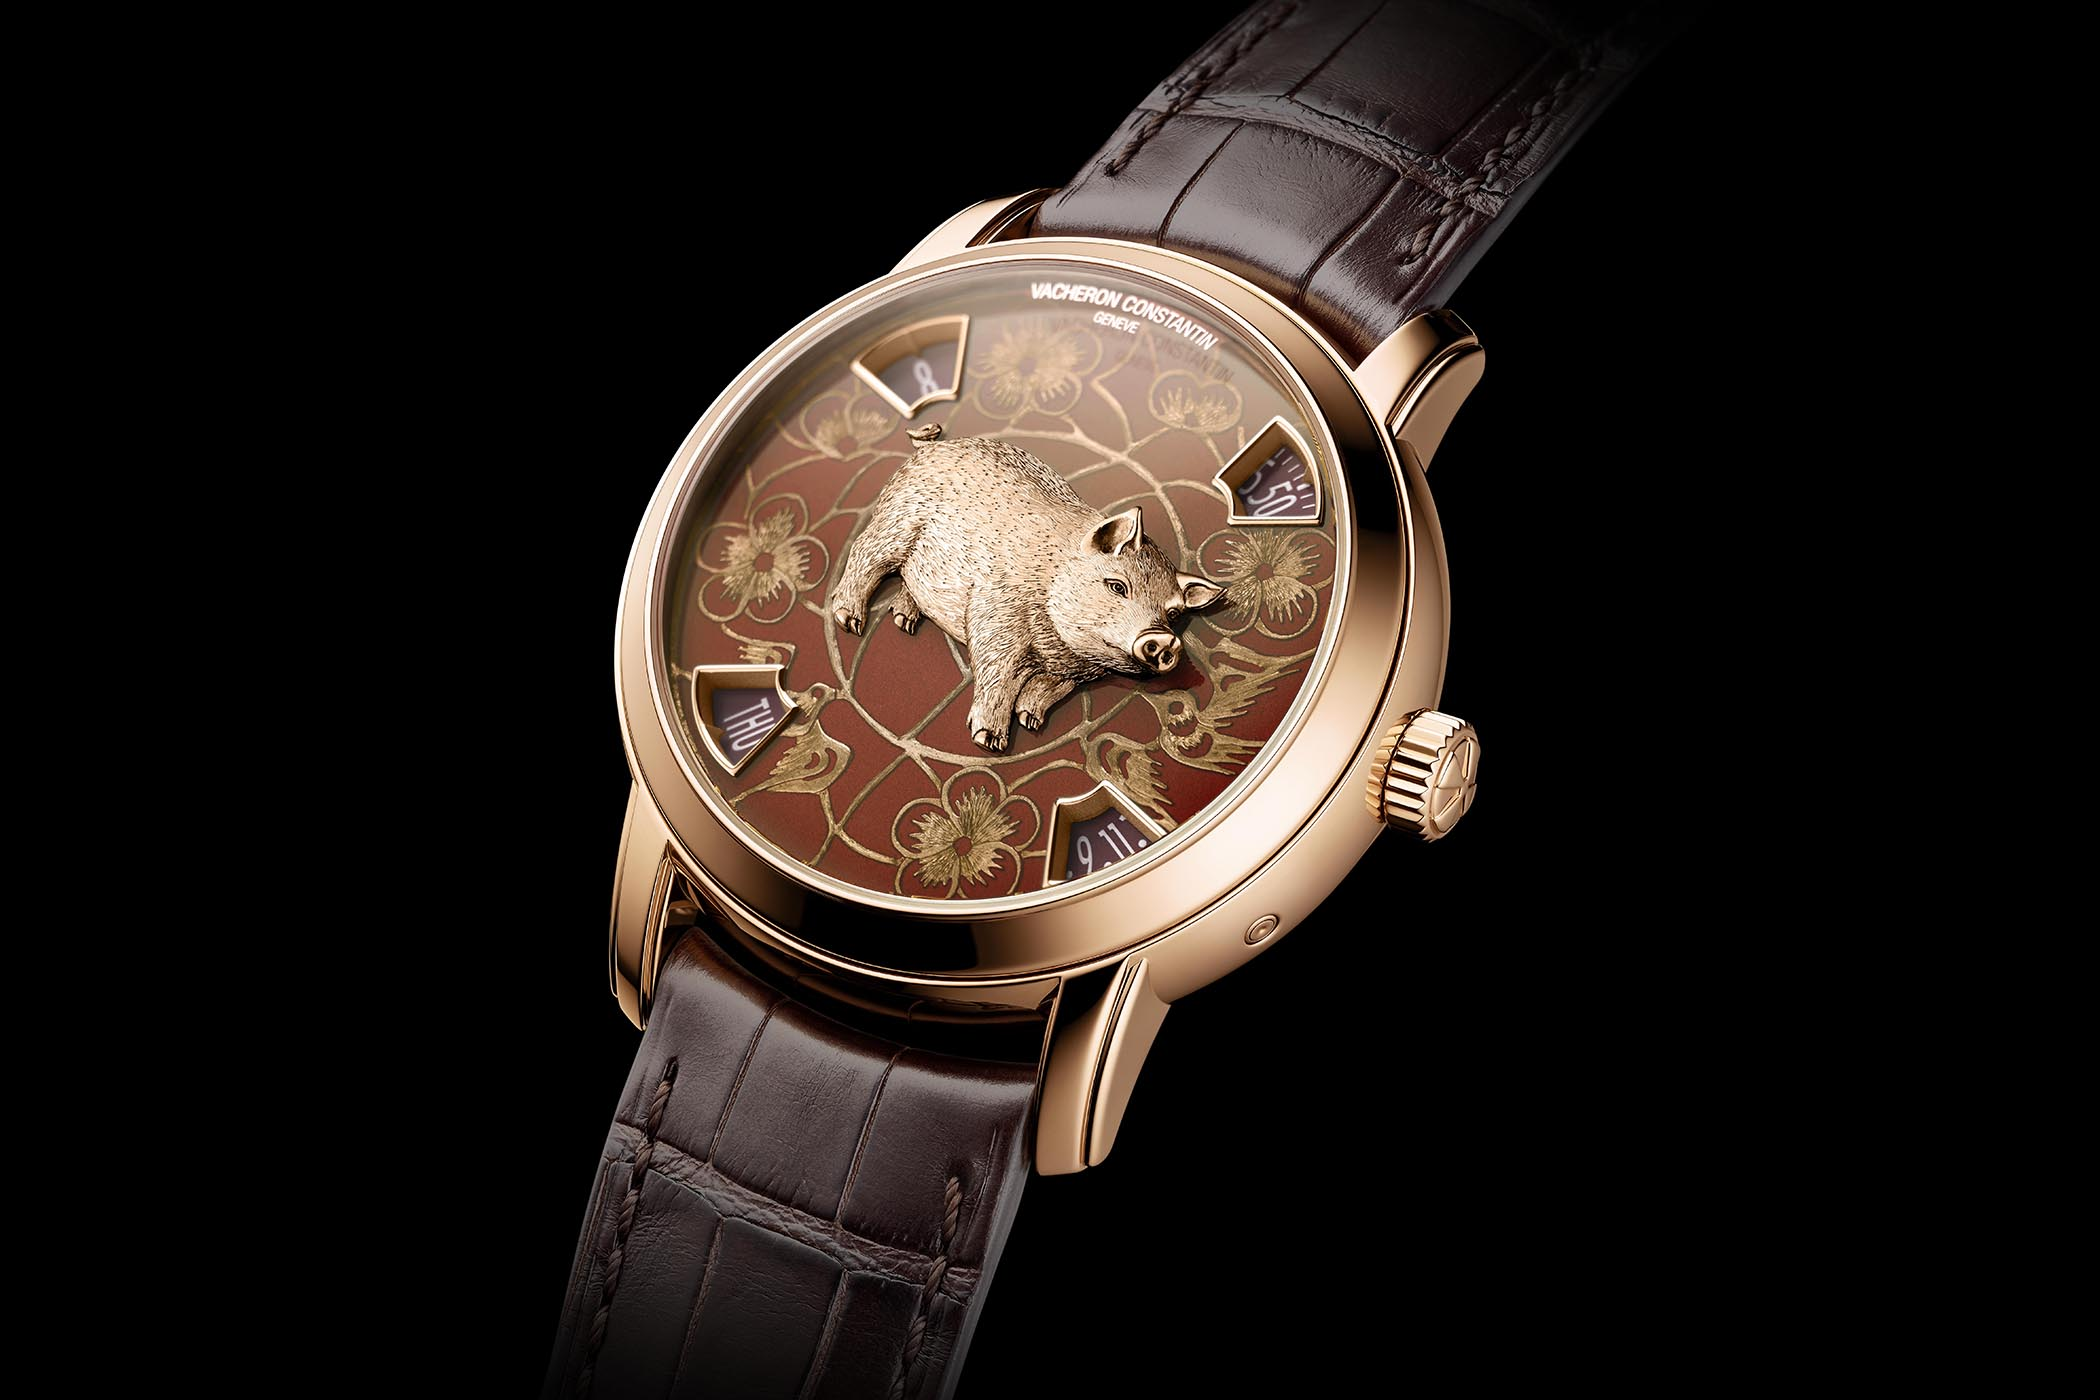 Vacheron Constantin Metiers Dart The Legend Of The Chinese Zodiac Year Of The Pig - 1